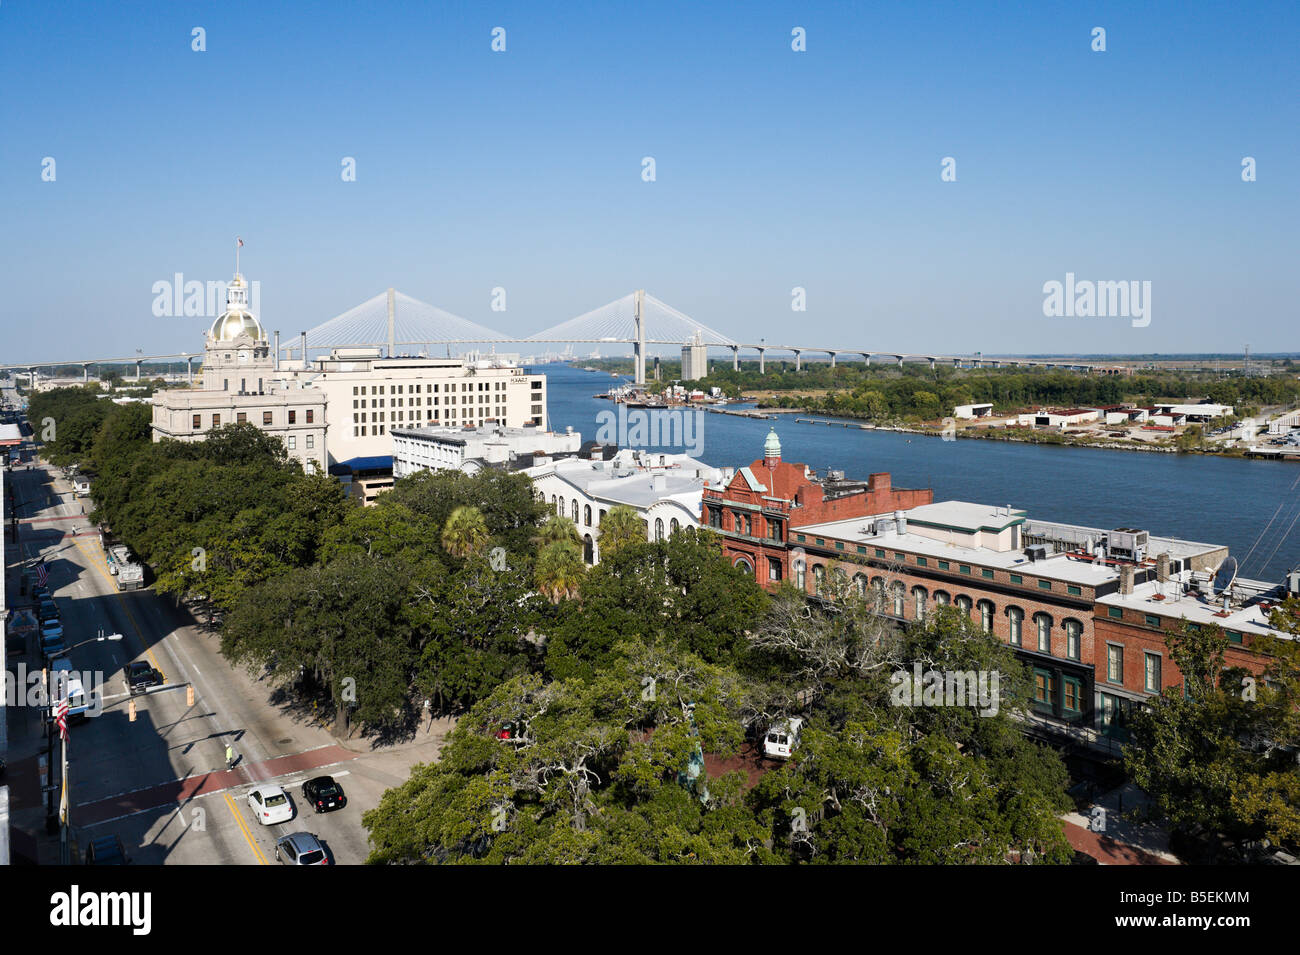 View over the Savannah River looking down Bay Street towards City Hall and the Talmadge Memorial Bridge, Savannah, - Stock Image